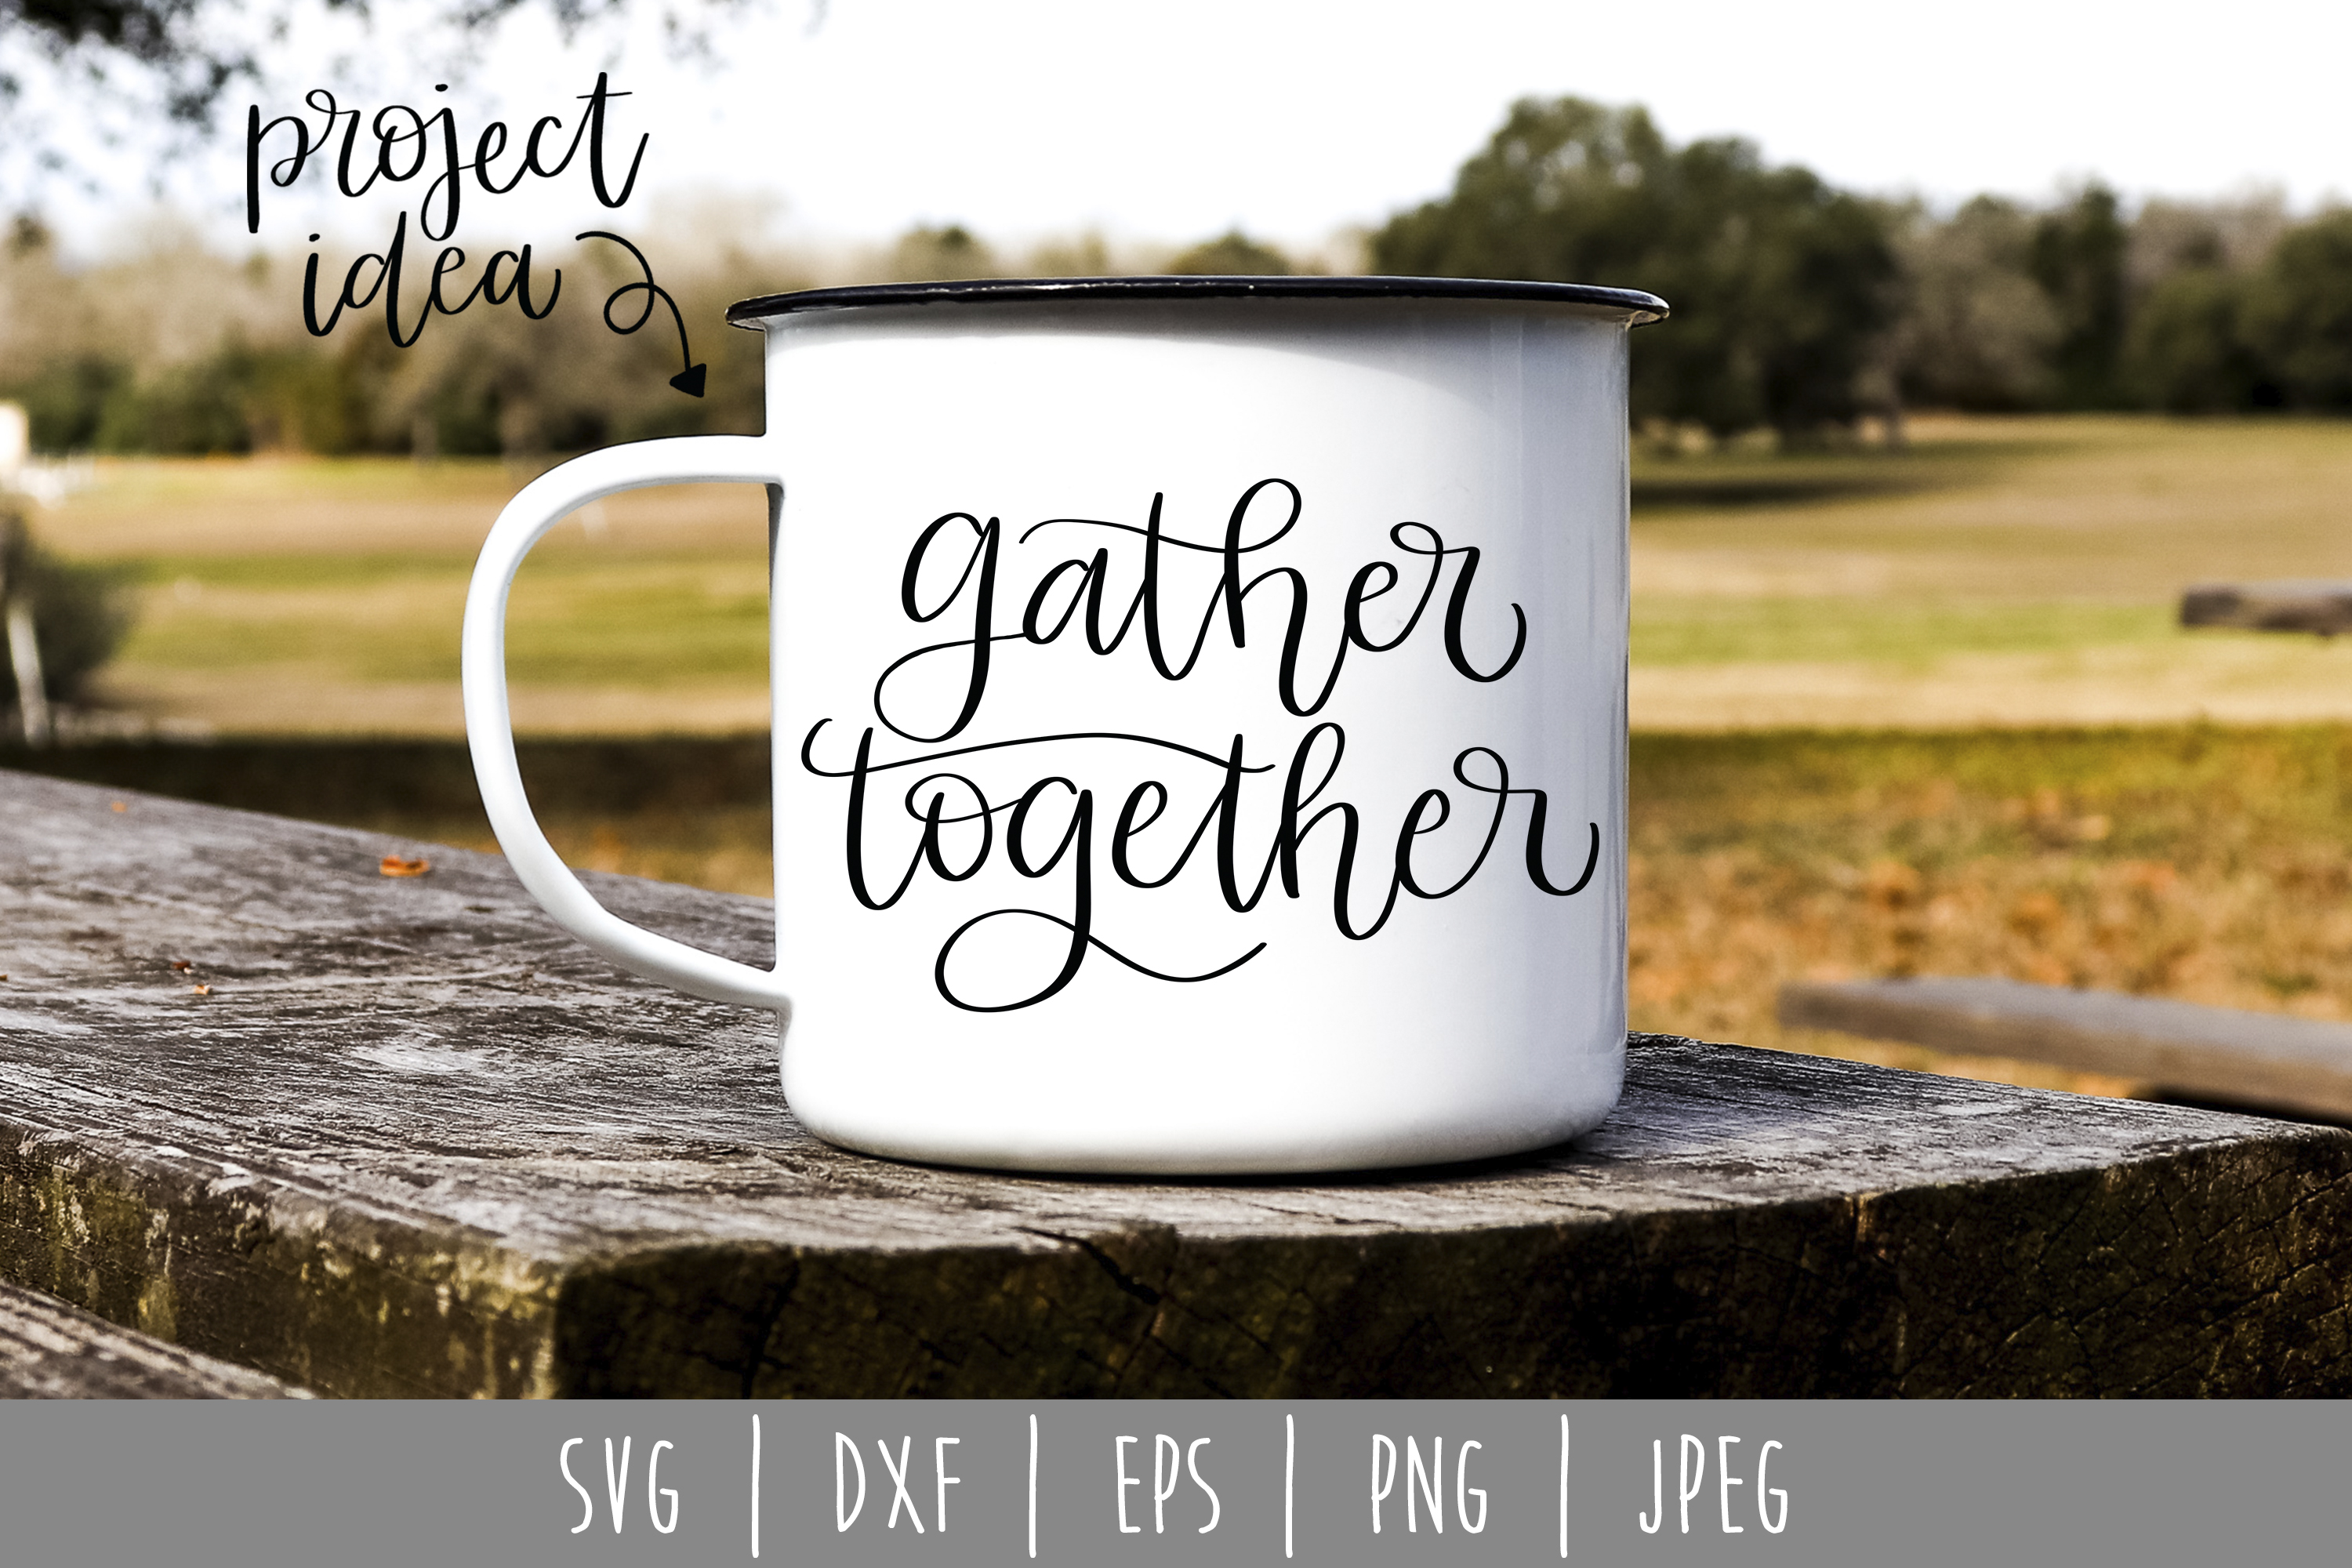 Download Free Gather Together Graphic By Savoringsurprises Creative Fabrica for Cricut Explore, Silhouette and other cutting machines.